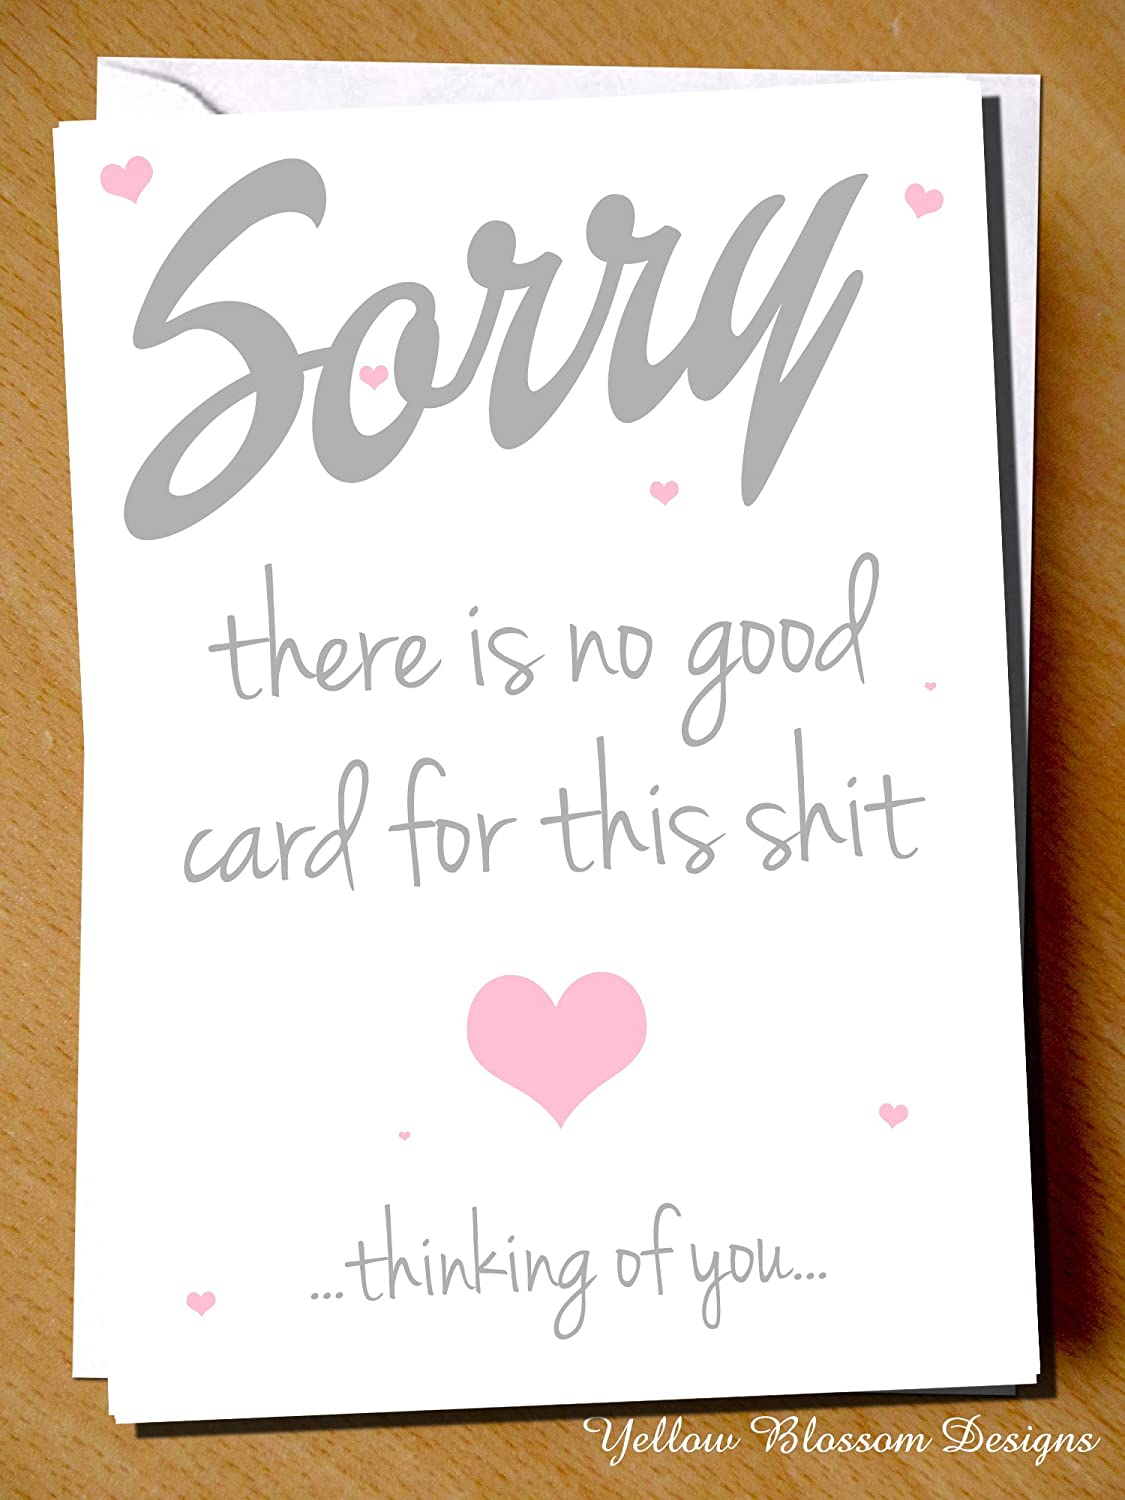 Apology Condolence Card Sorry There Is No Good Card For This Shit